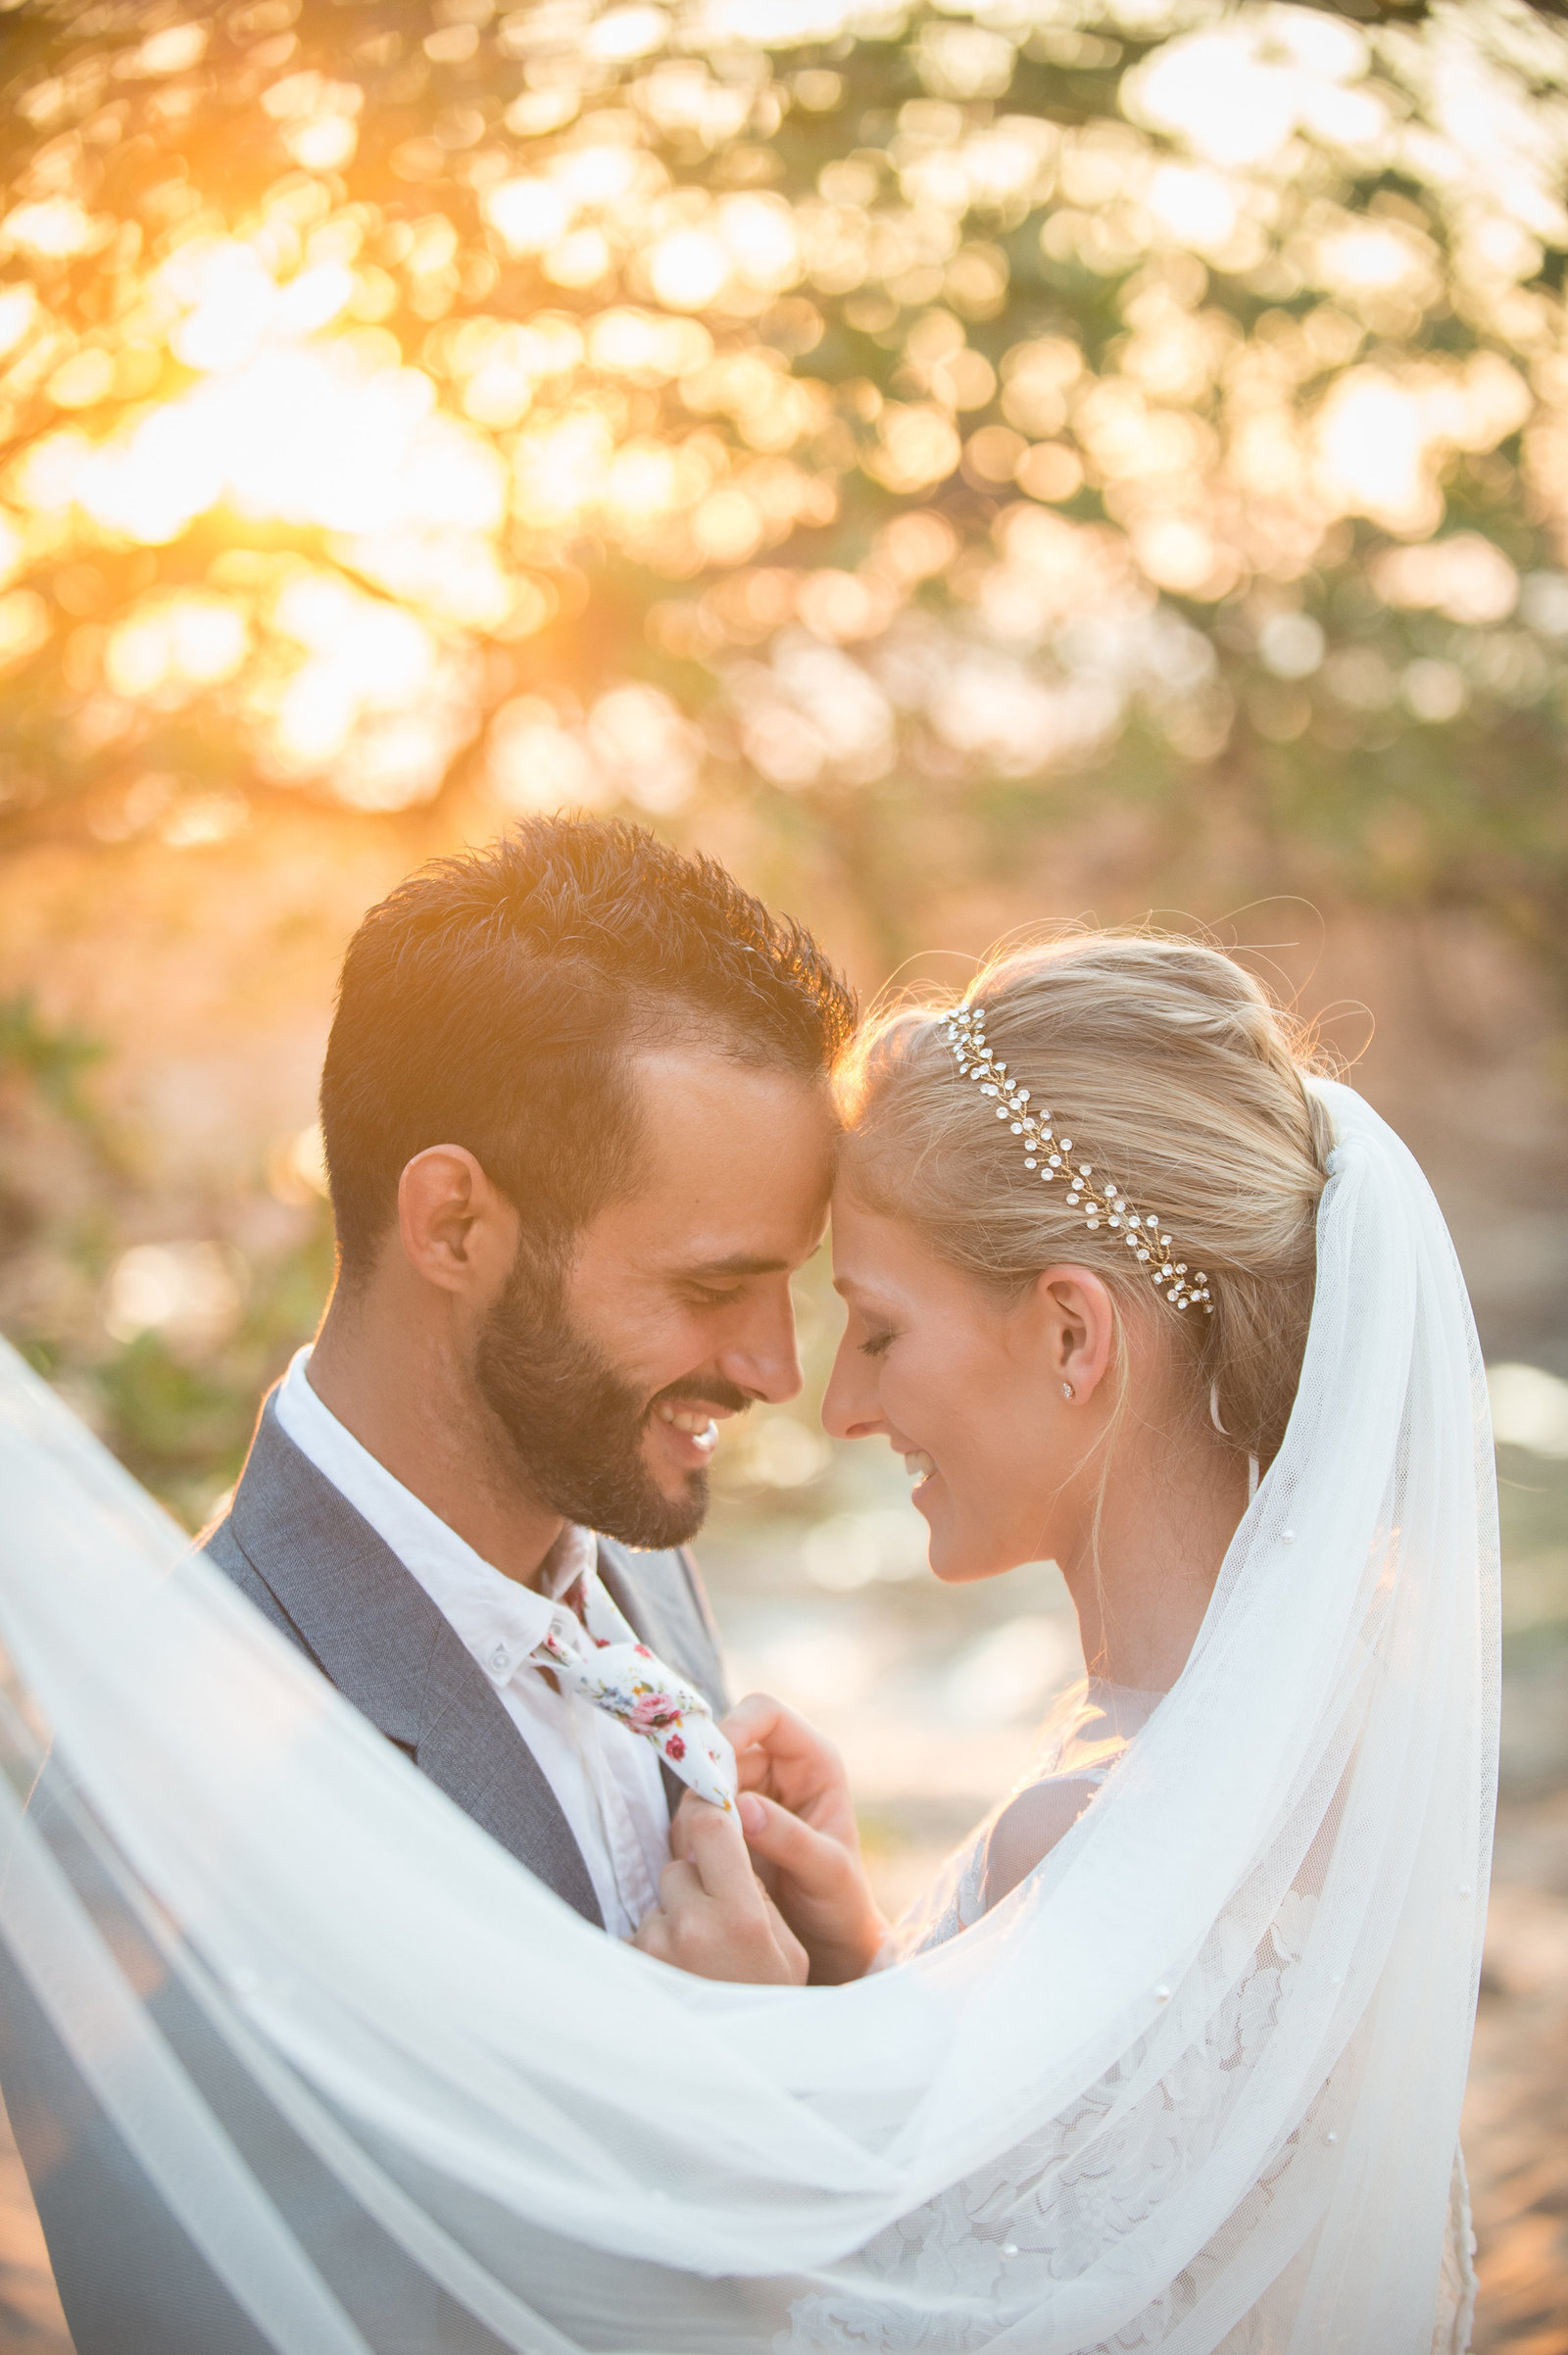 02-Destination Wedding Photography - Costa Rica Wedding Photographers - 10